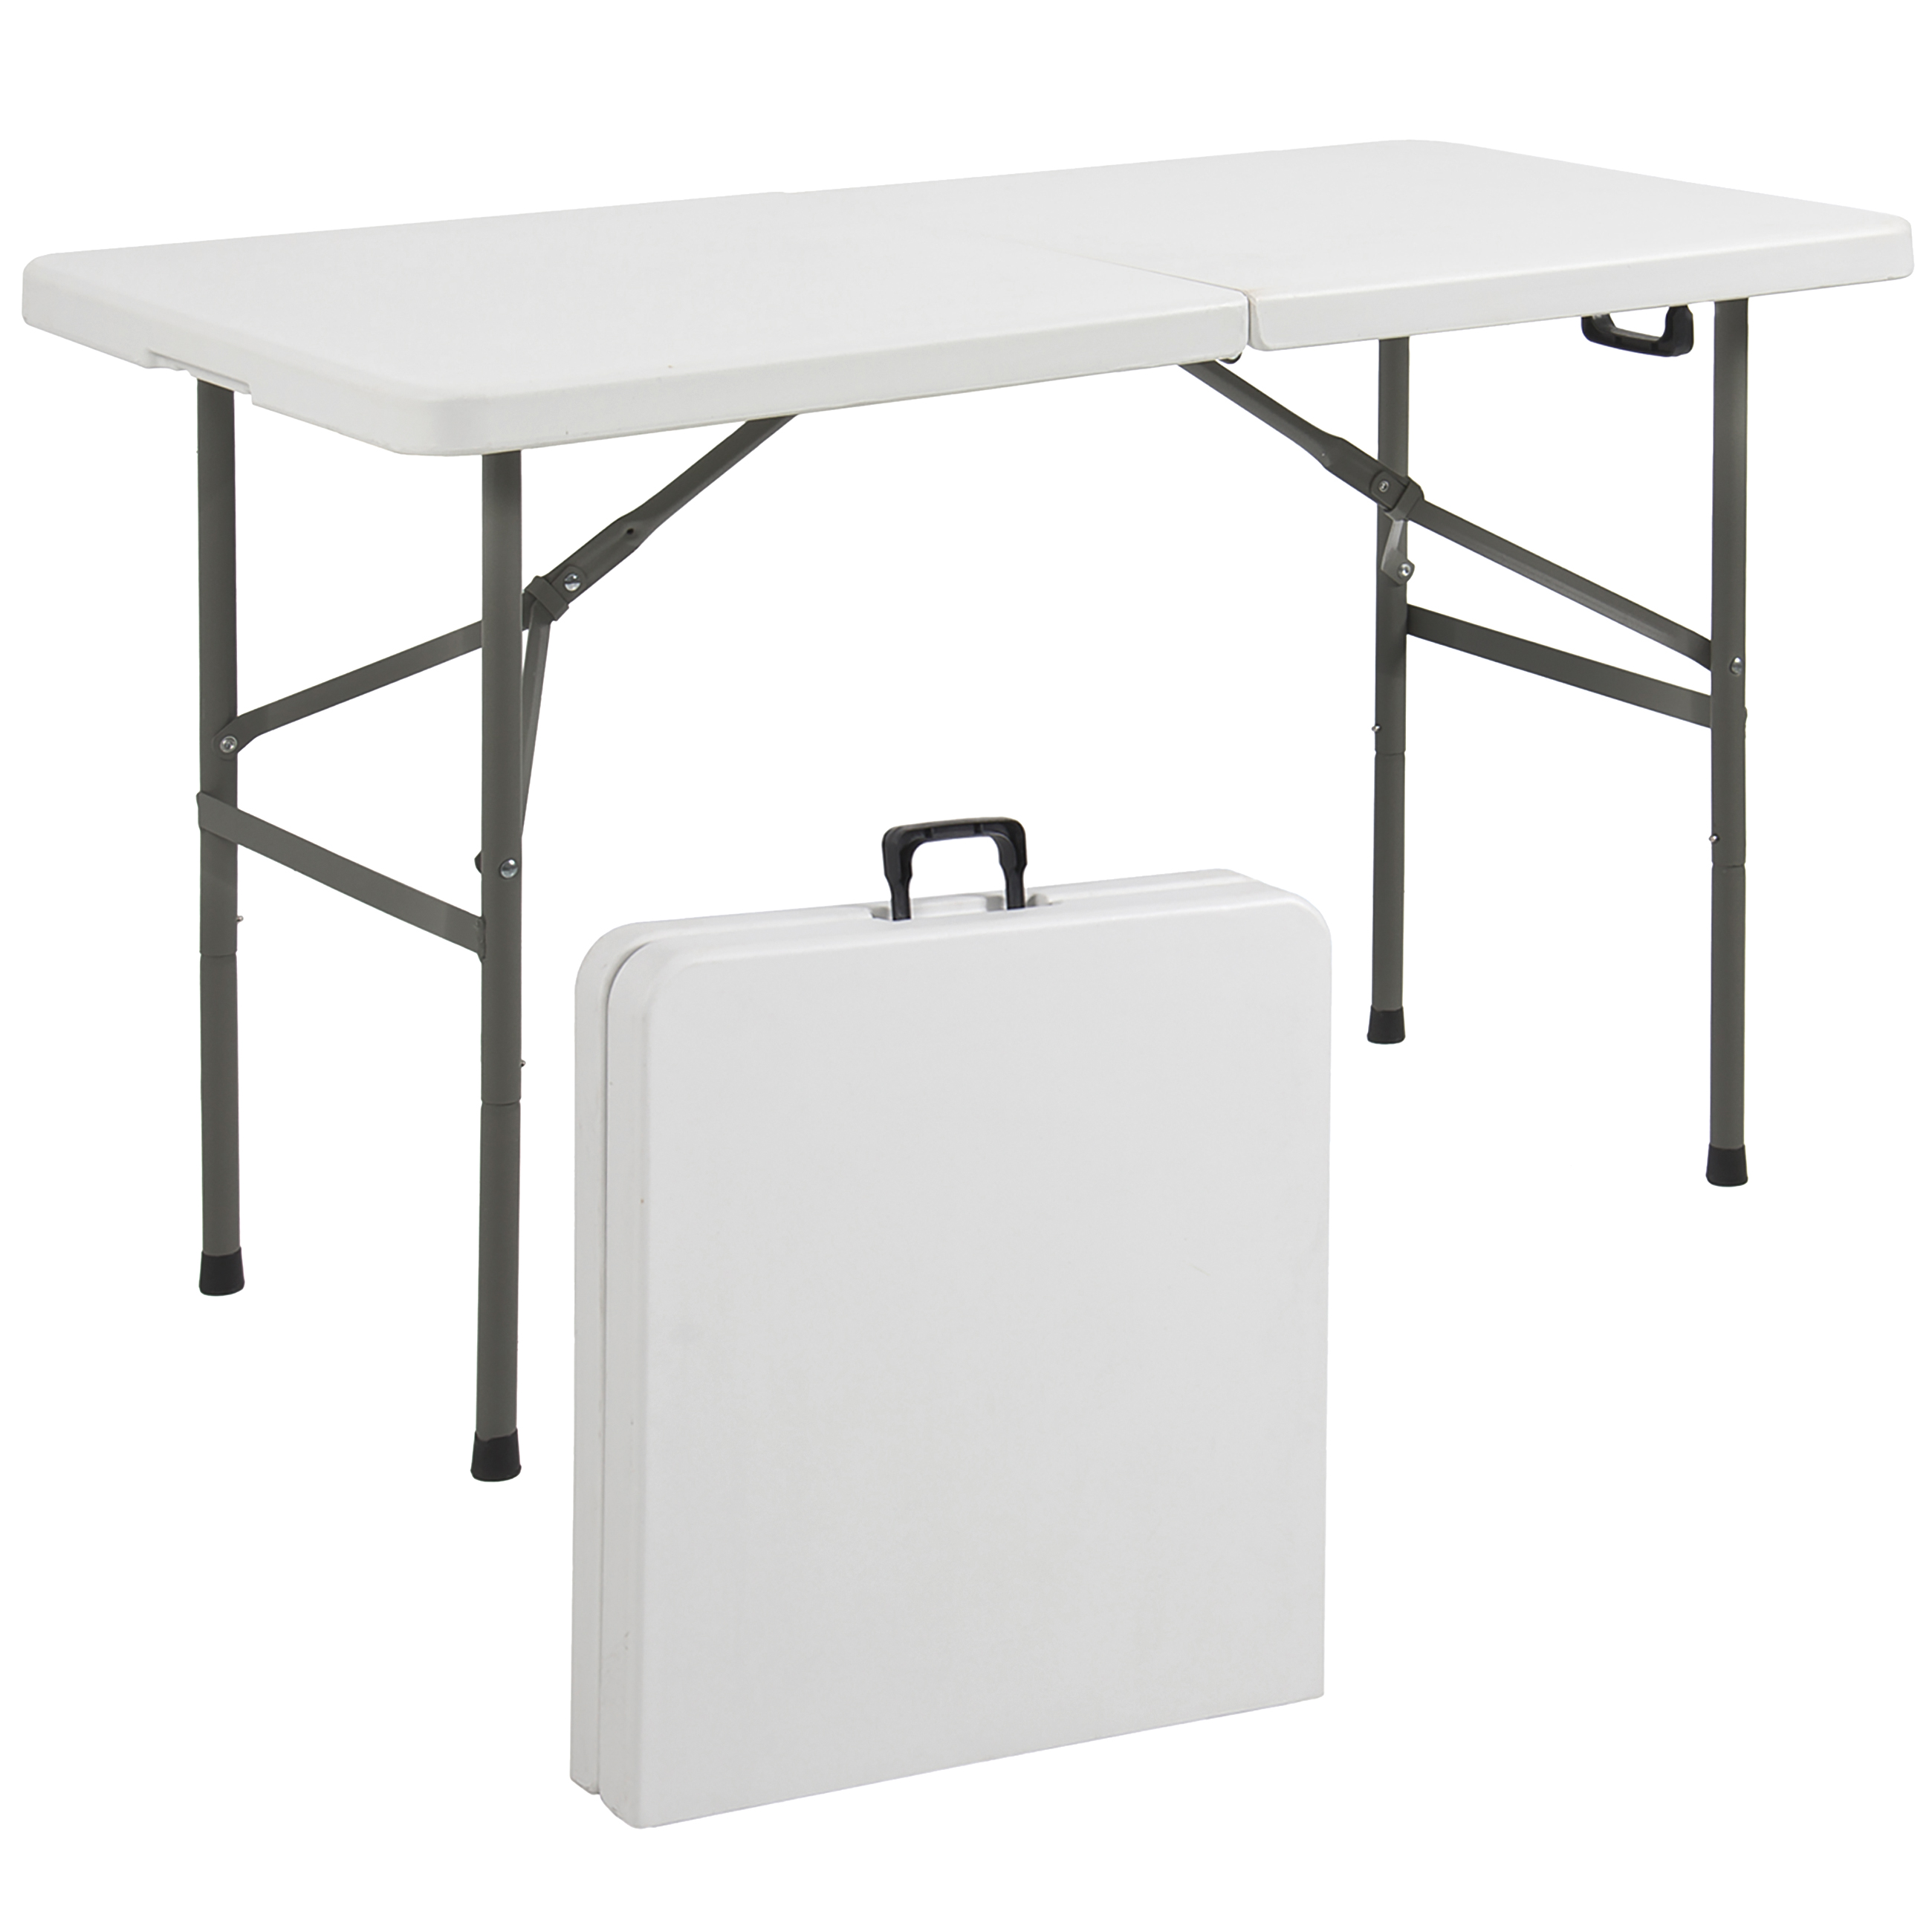 Folding Table Folding Table 4 39 Portable Plastic Indoor Outdoor Picnic